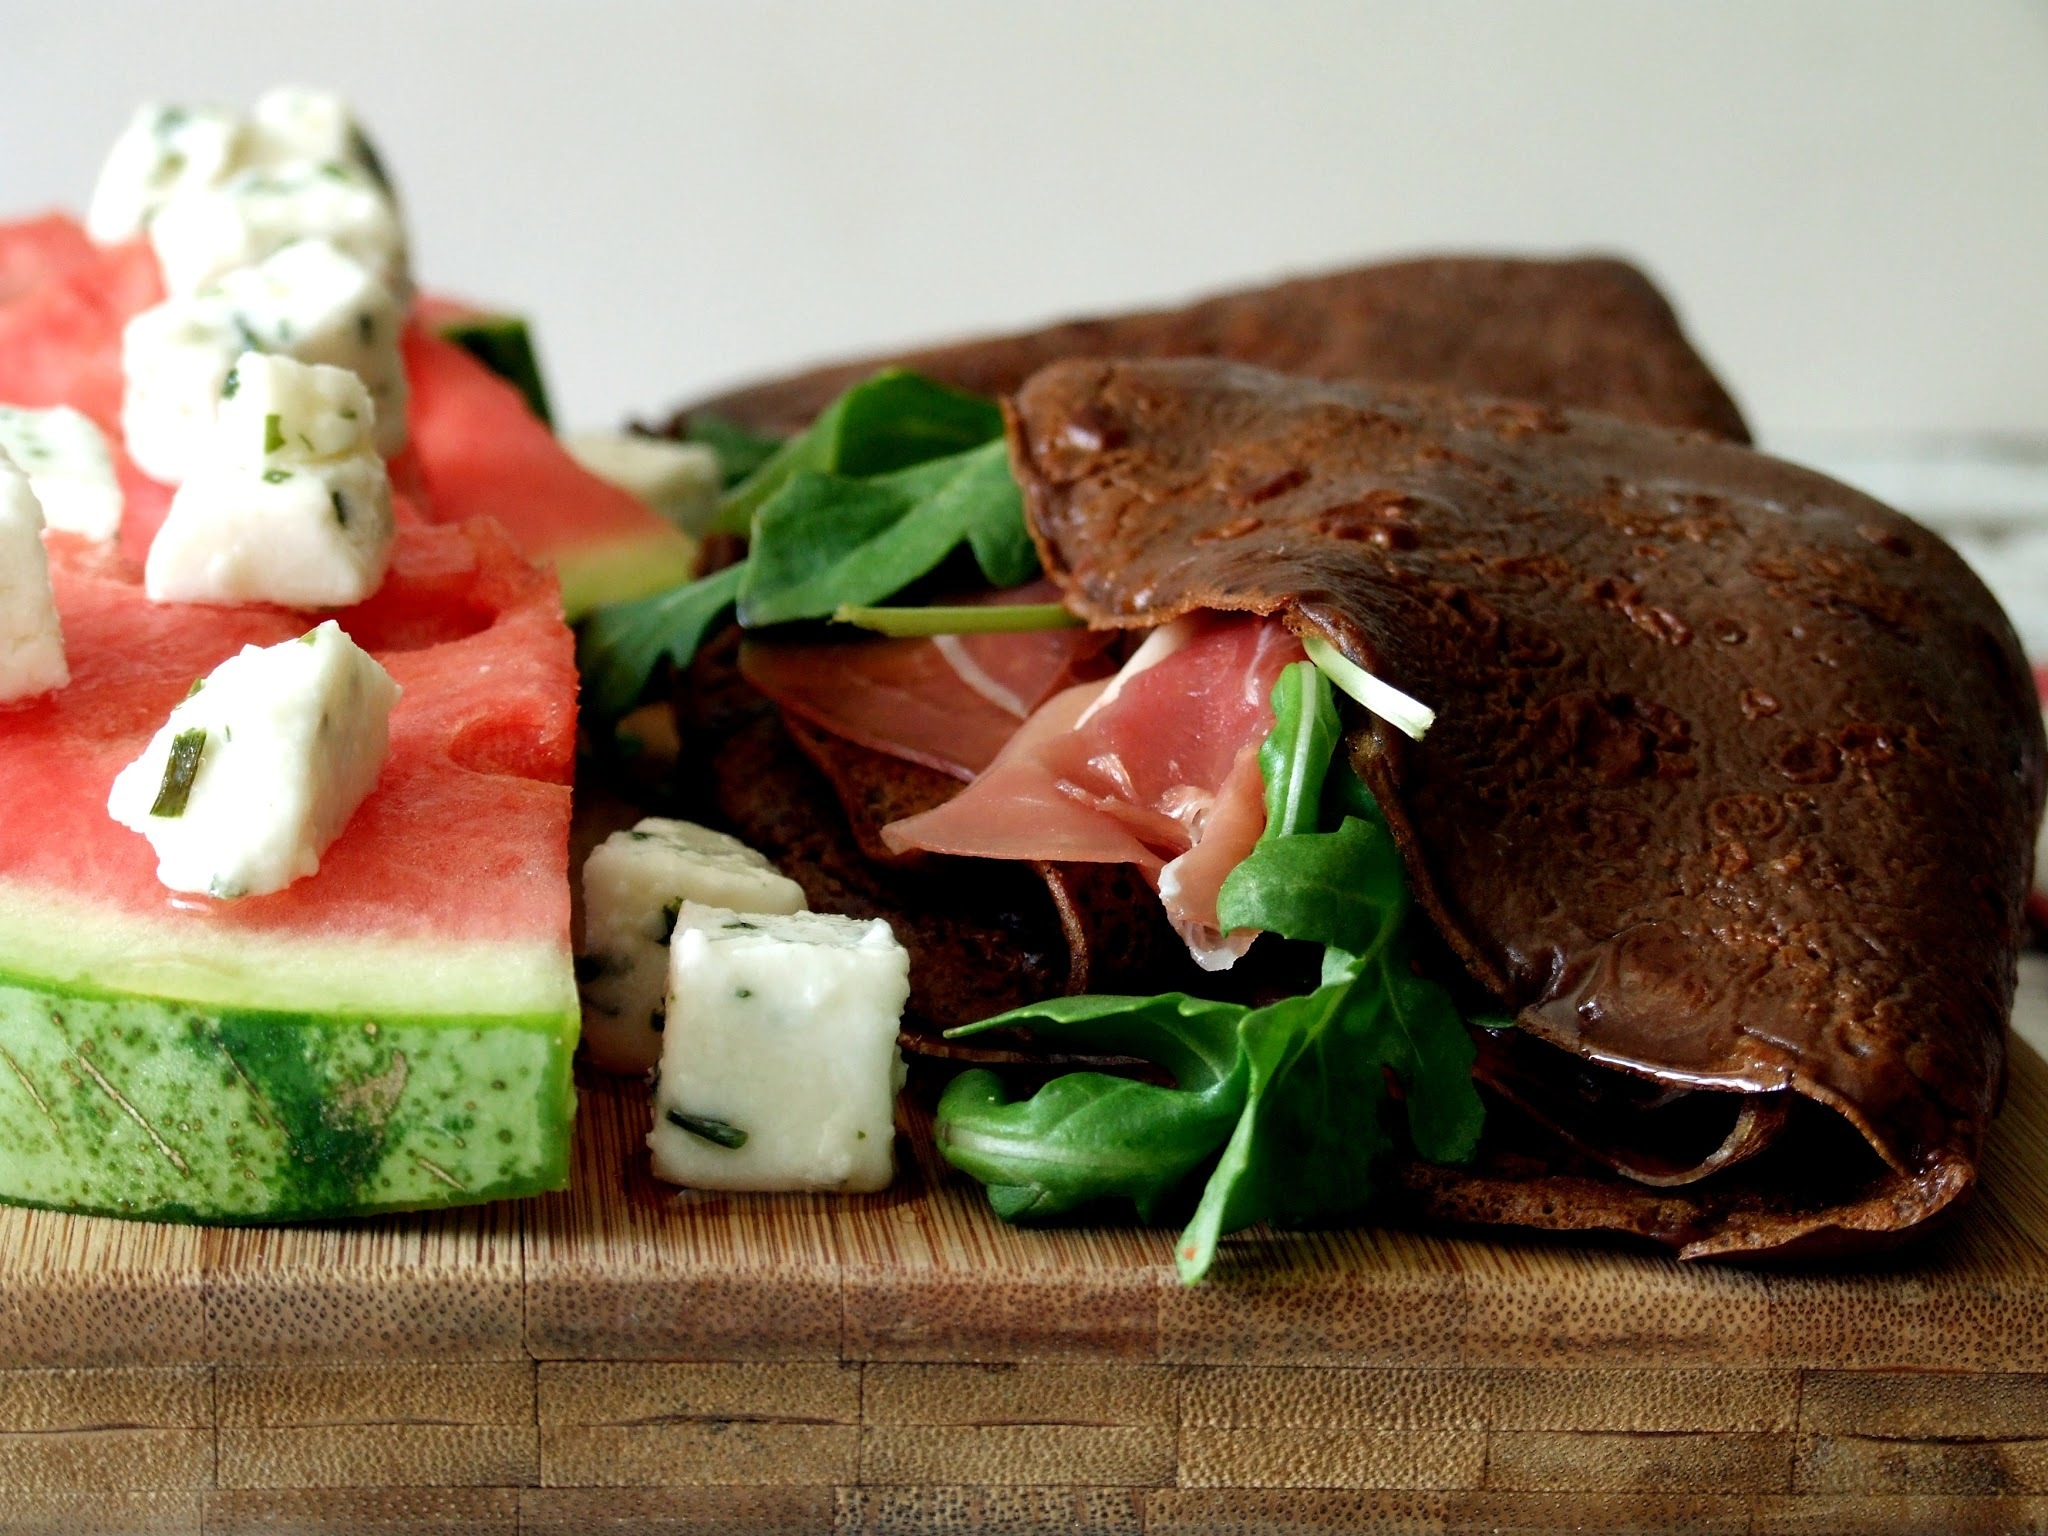 Crepes de alfarroba, presunto e rúcula com salada de melancia e queijo de cabra / Carob, ham and rocket crepes with watermelon and goat cheese salad